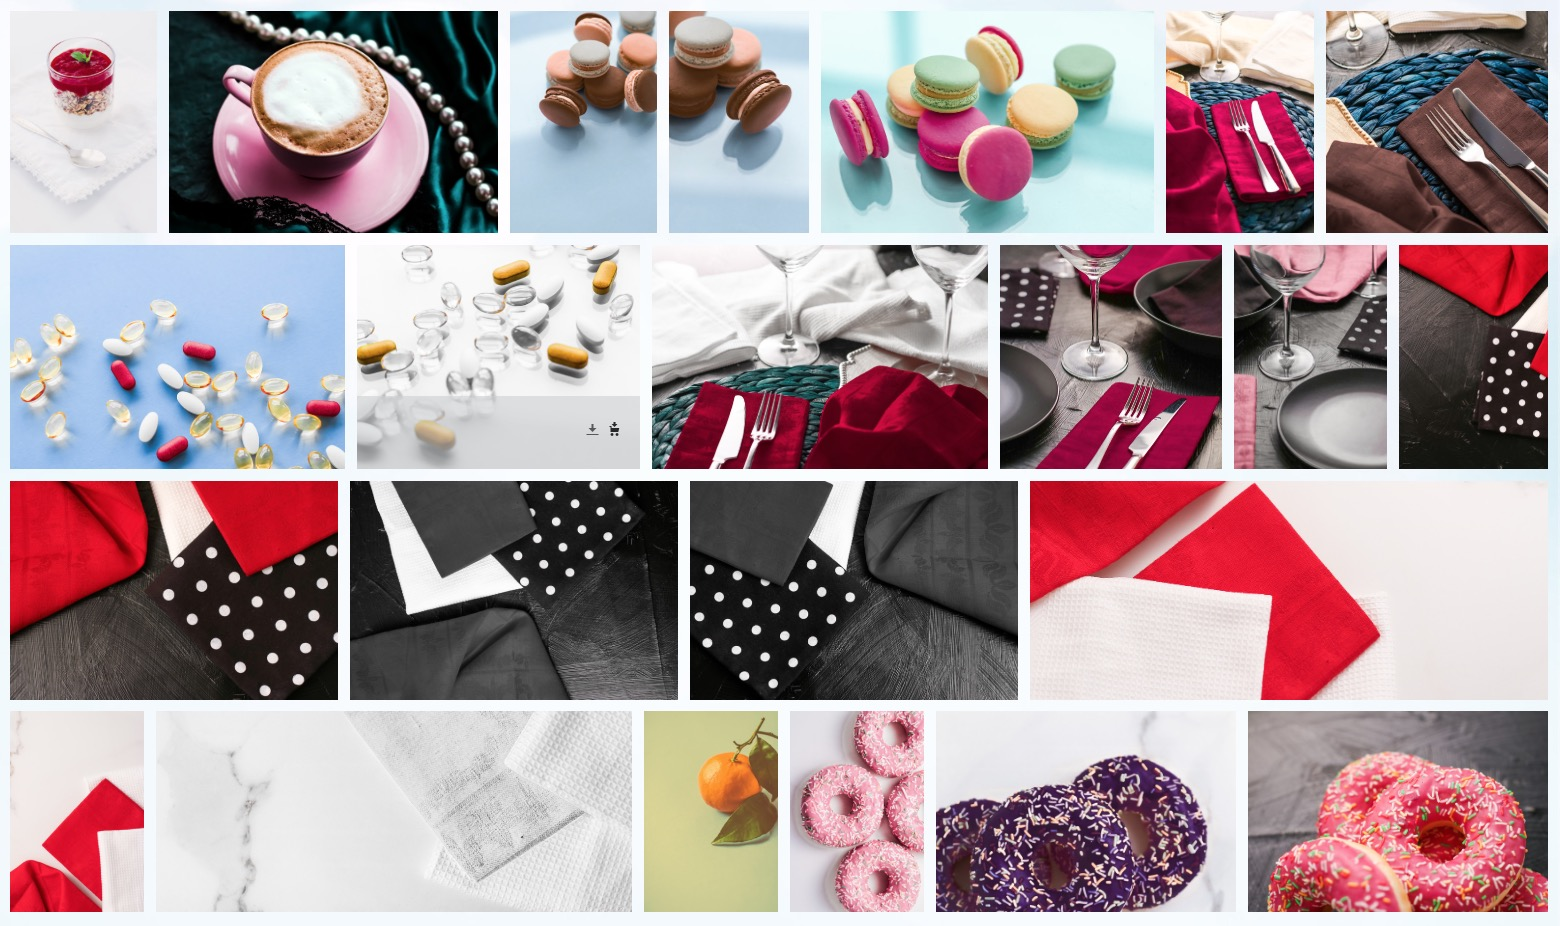 50 Images | Food & Drinks Stock Photo Bundle #1 example image 3